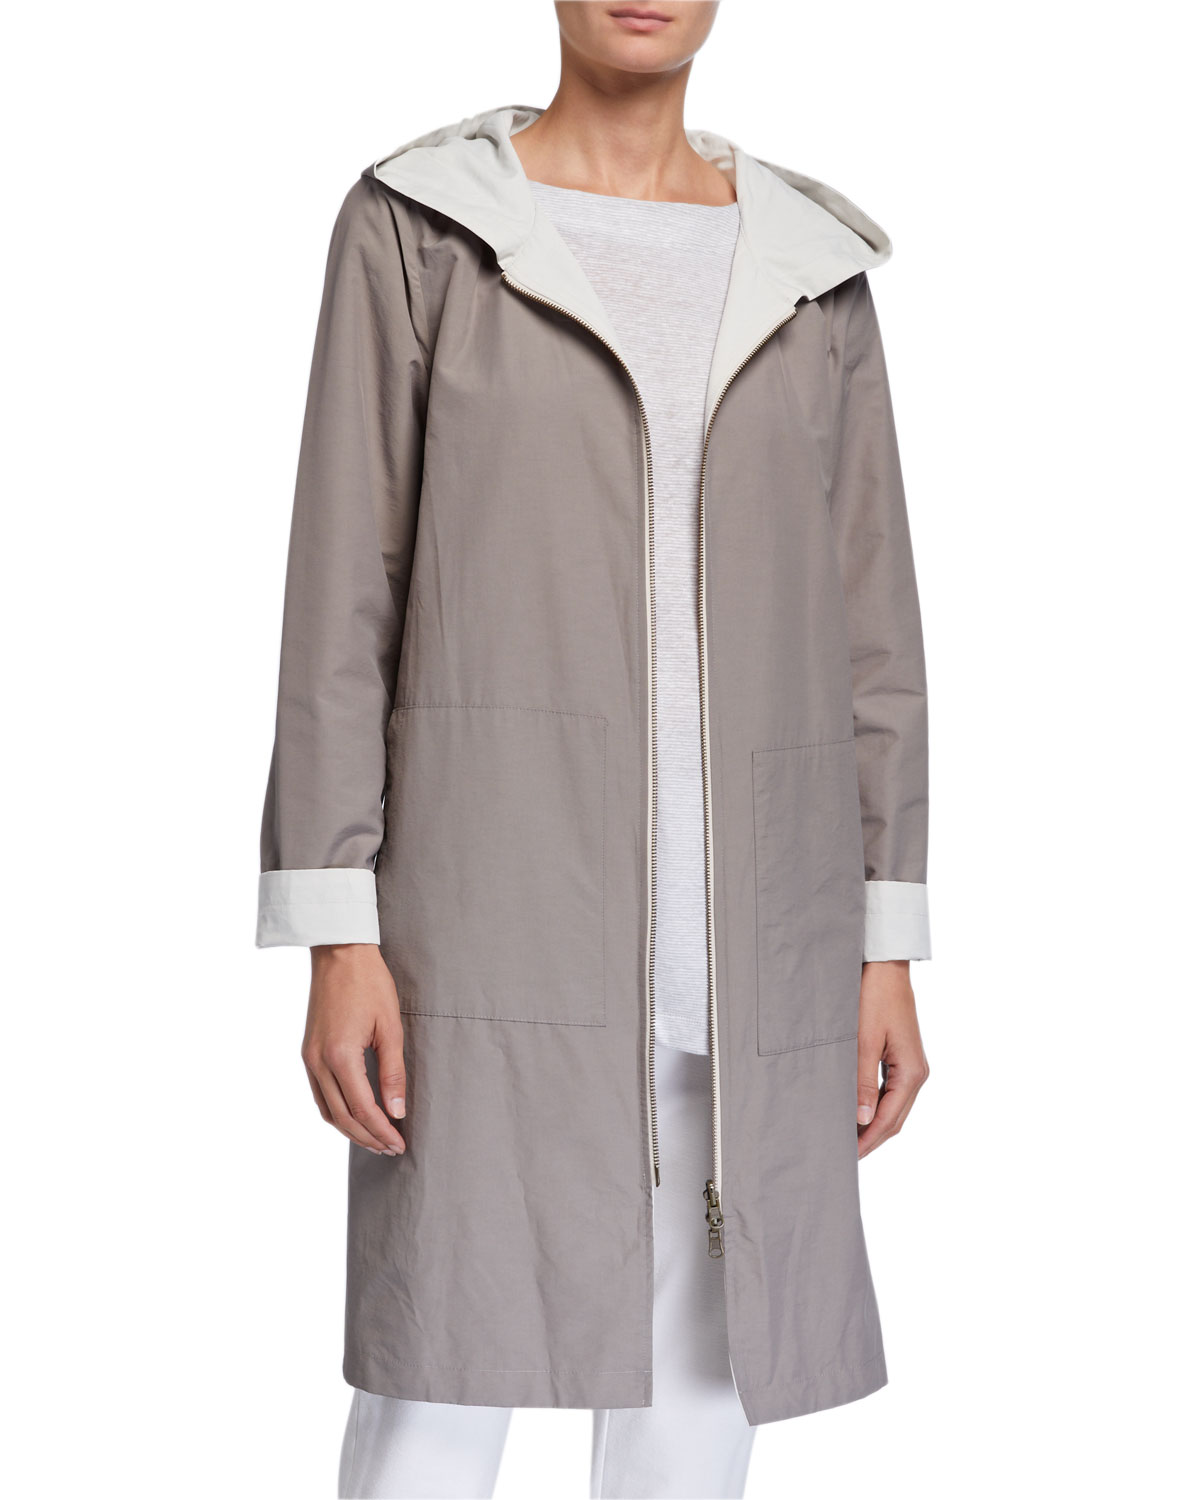 Eileen Fisher Jackets PLUS SIZE REVERSIBLE HOODED COTTON/NYLON JACKET